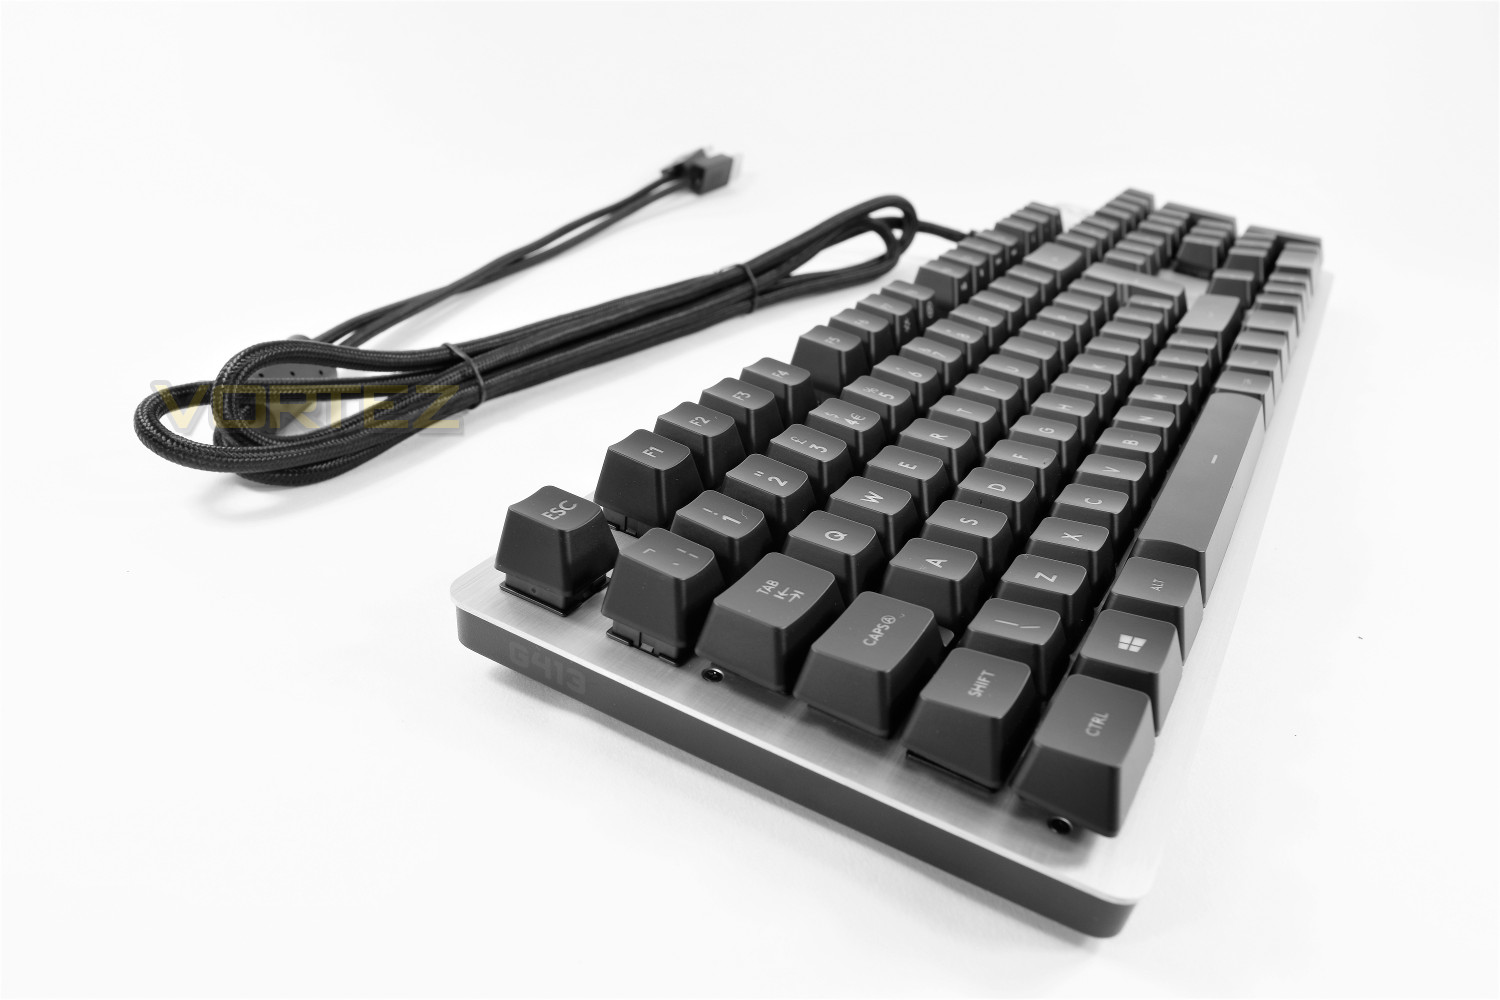 Logitech G413 Review Closer Look Carbon Mechanical Backlit Gaming Keyboard The Top Right Of Traditionally Home To A Trio Led Indicators Is Little Different On This Area Sees Placement Only Two